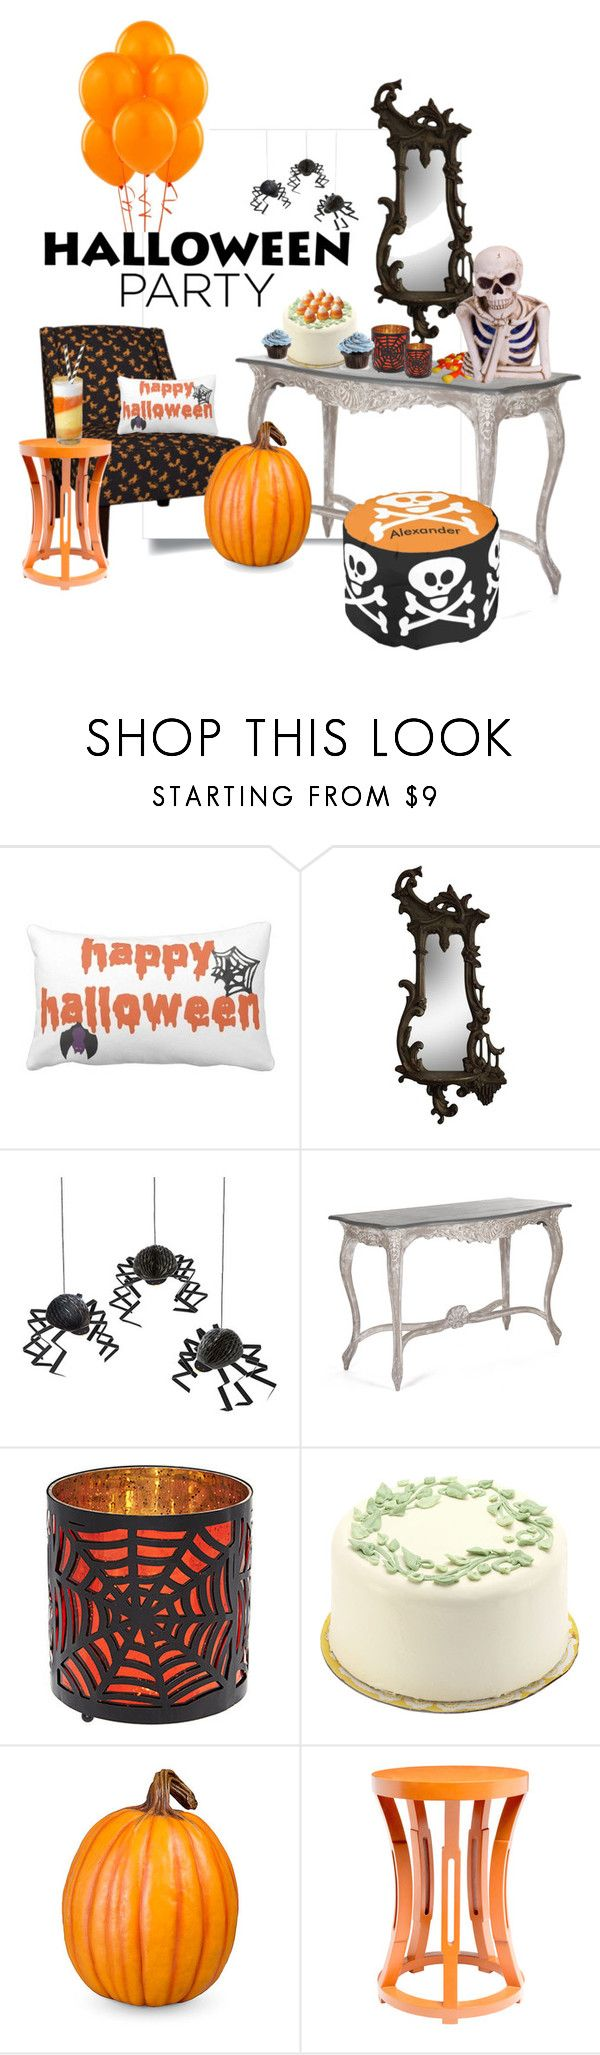 """""""Halloween Party"""" by lesrubadesigns ❤ liked on Polyvore featuring interior, interiors, interior design, home, home decor, interior decorating, Meri Meri, Sweet Lady Jane, Improvements and Bungalow 5"""